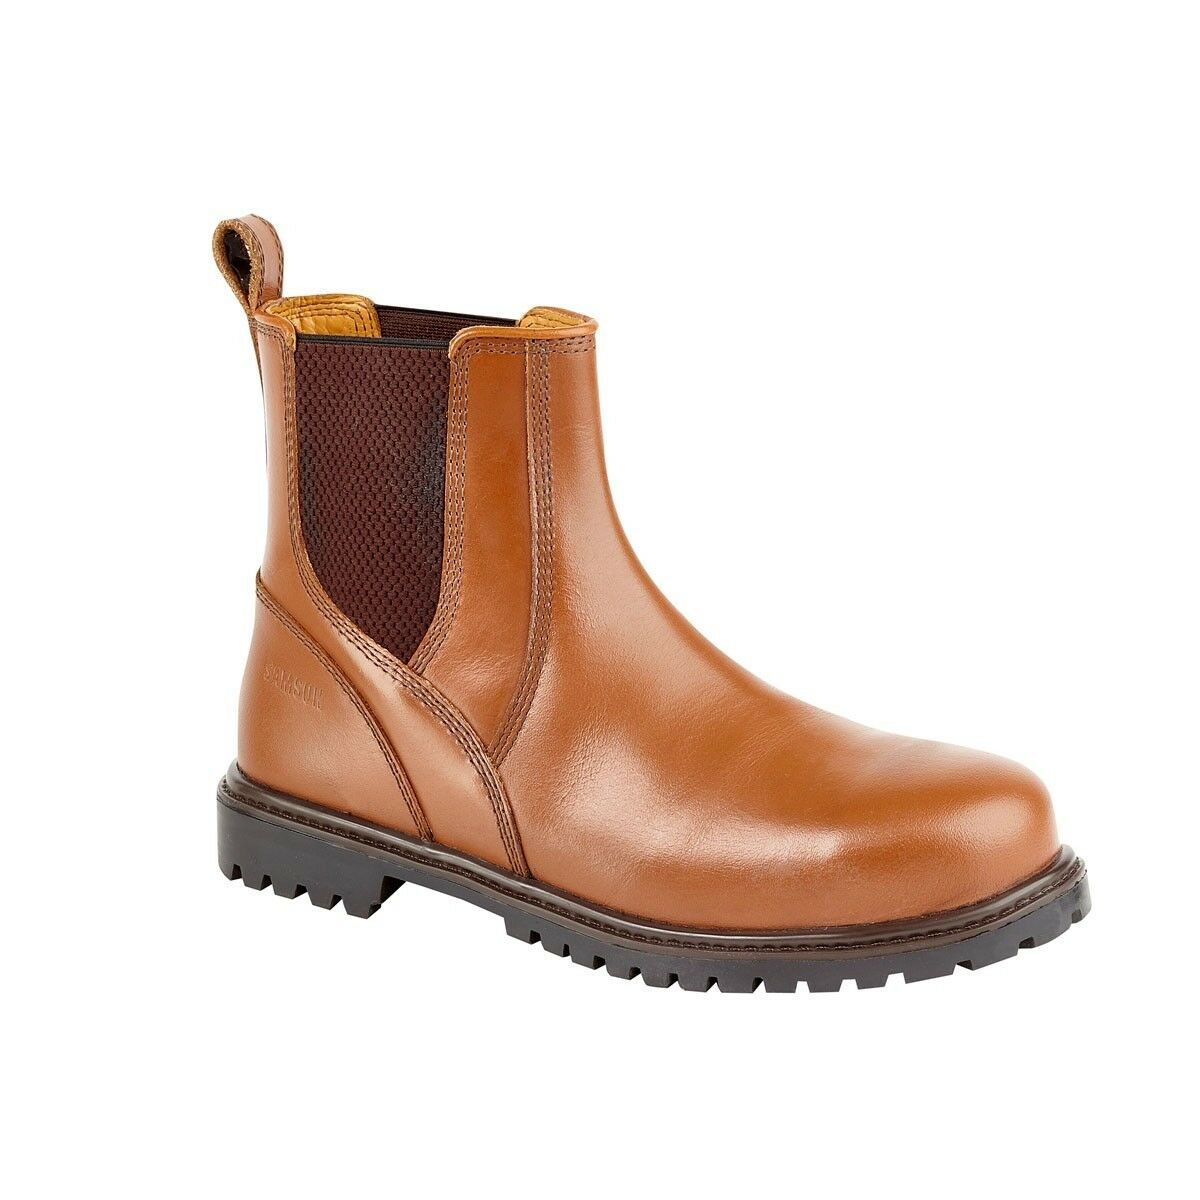 SAMSON 7046 WAXY REDSKIN CHELSEA DEALER BOOT S3 WITH STEEL TOECAP SIZES 6-12